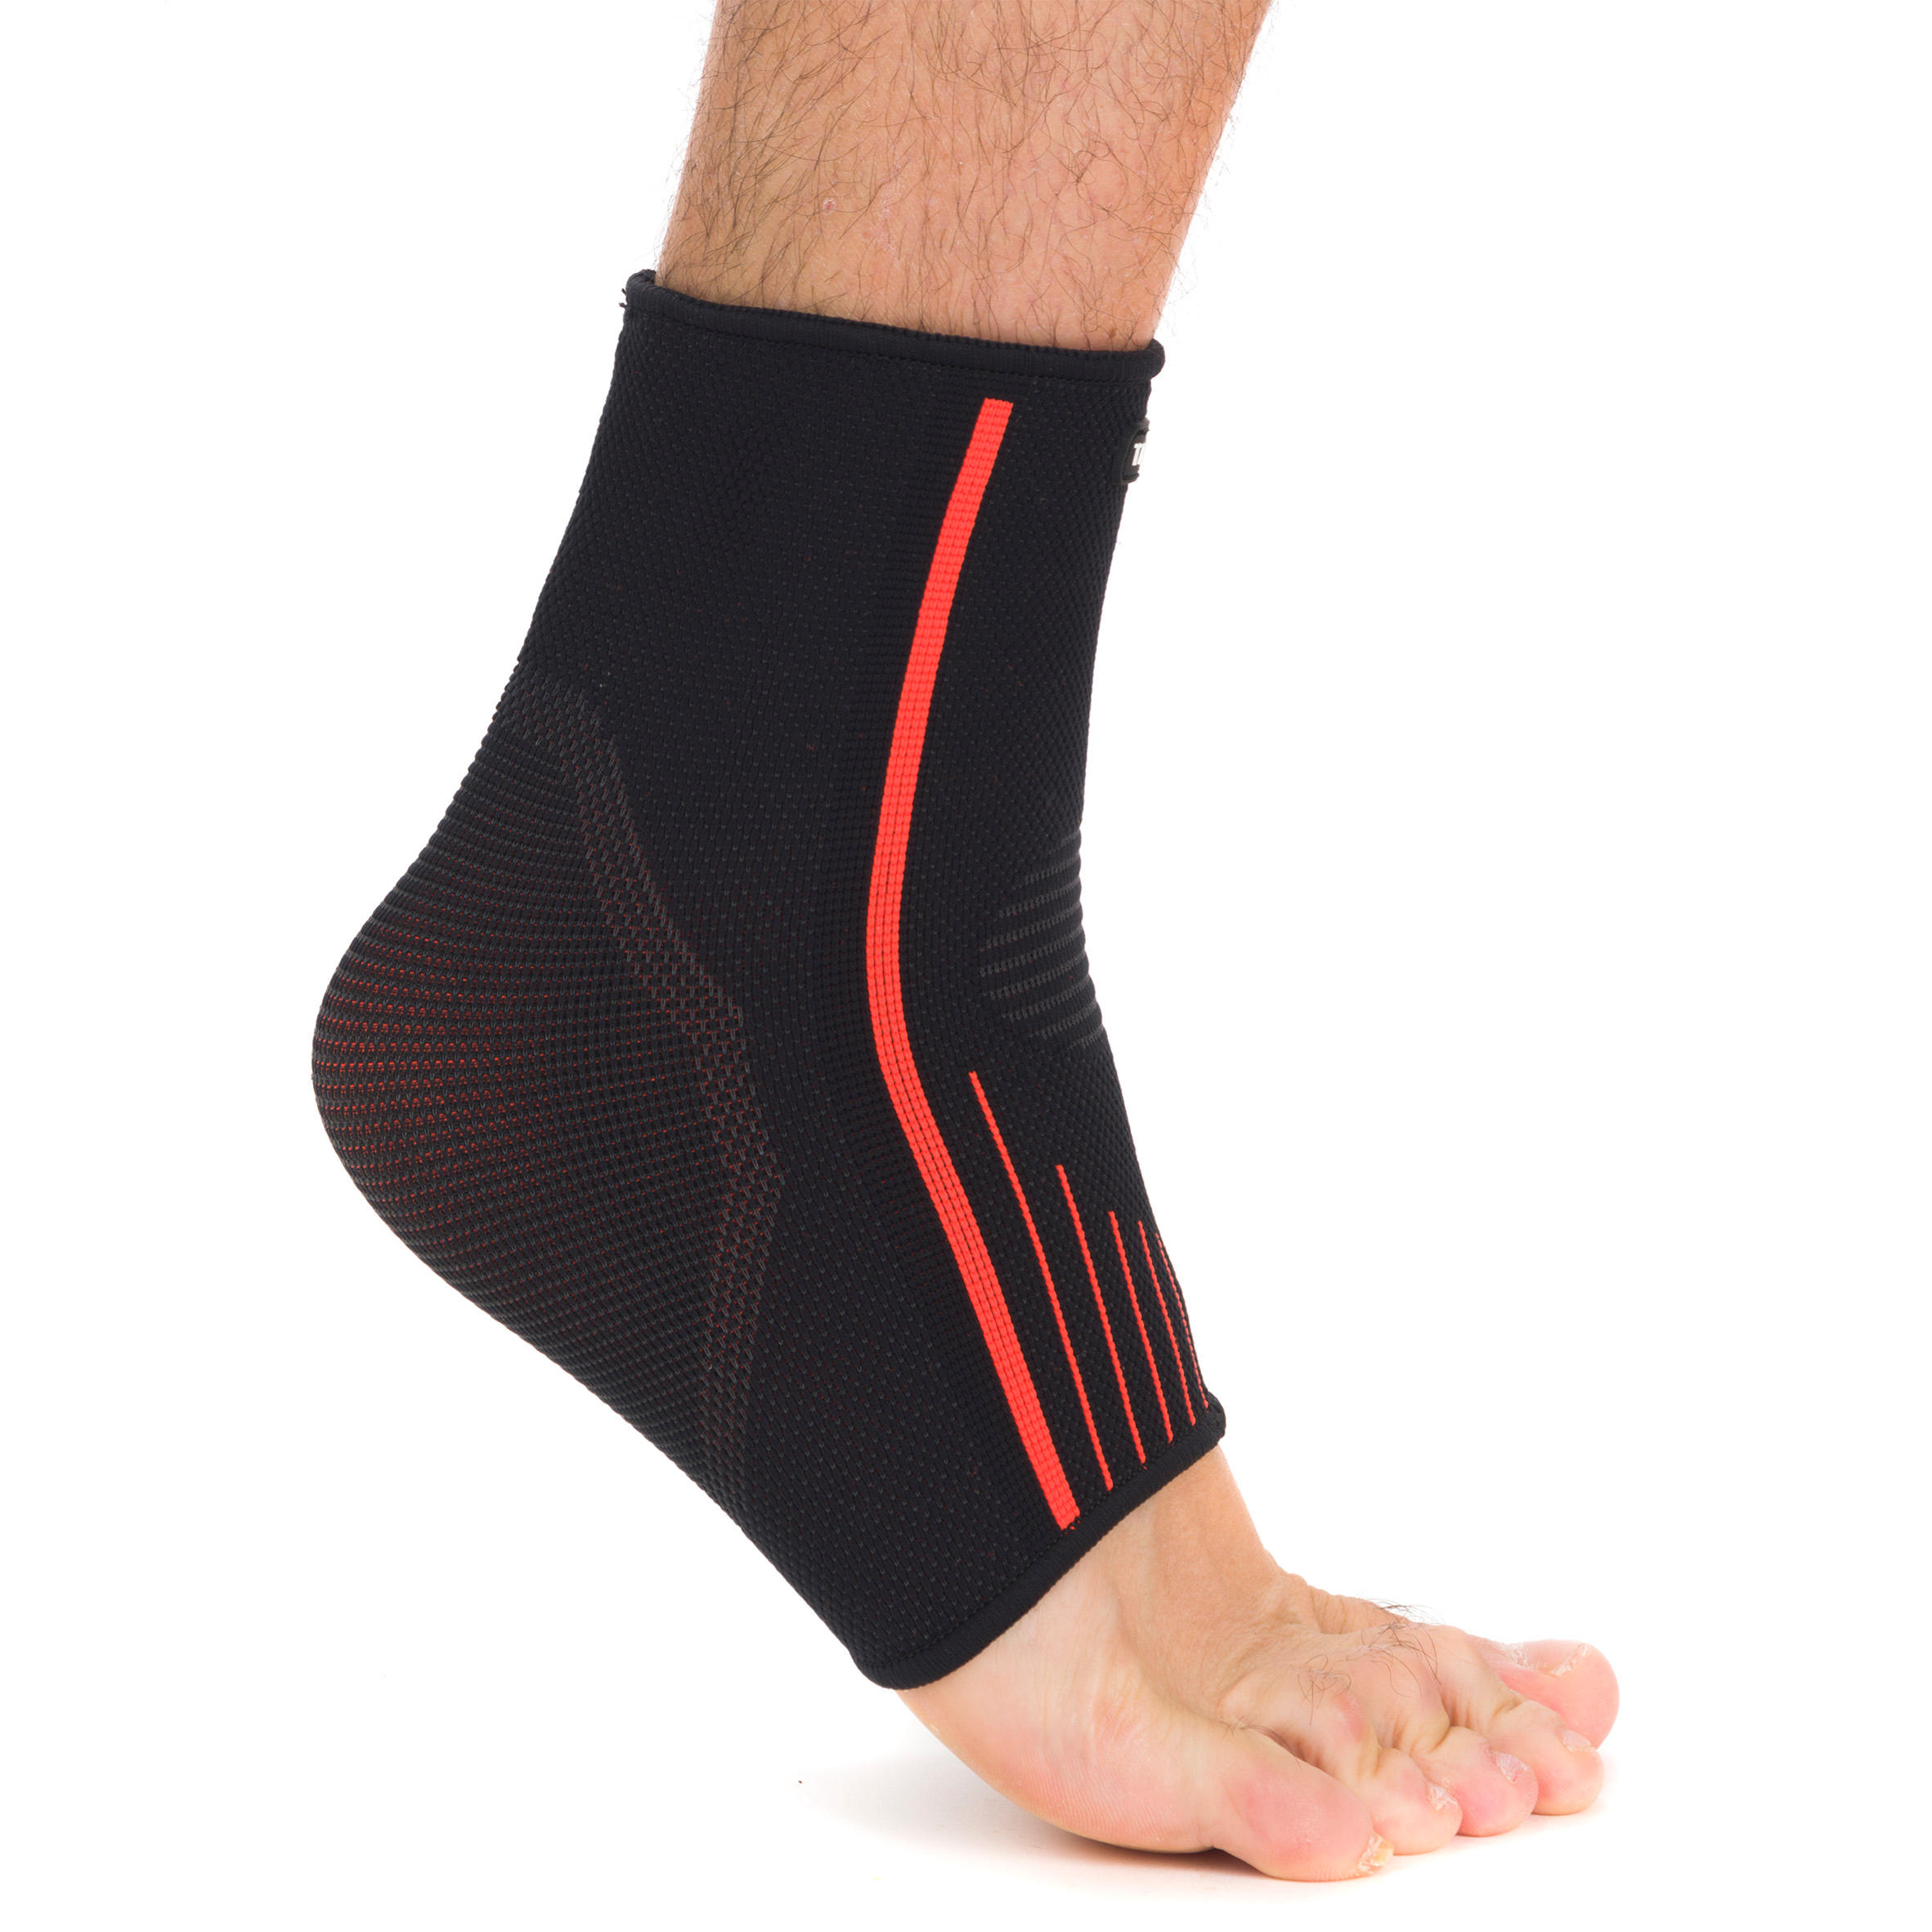 Soft 300 Right/Left Men's/Women's Compression Ankle Support - Black